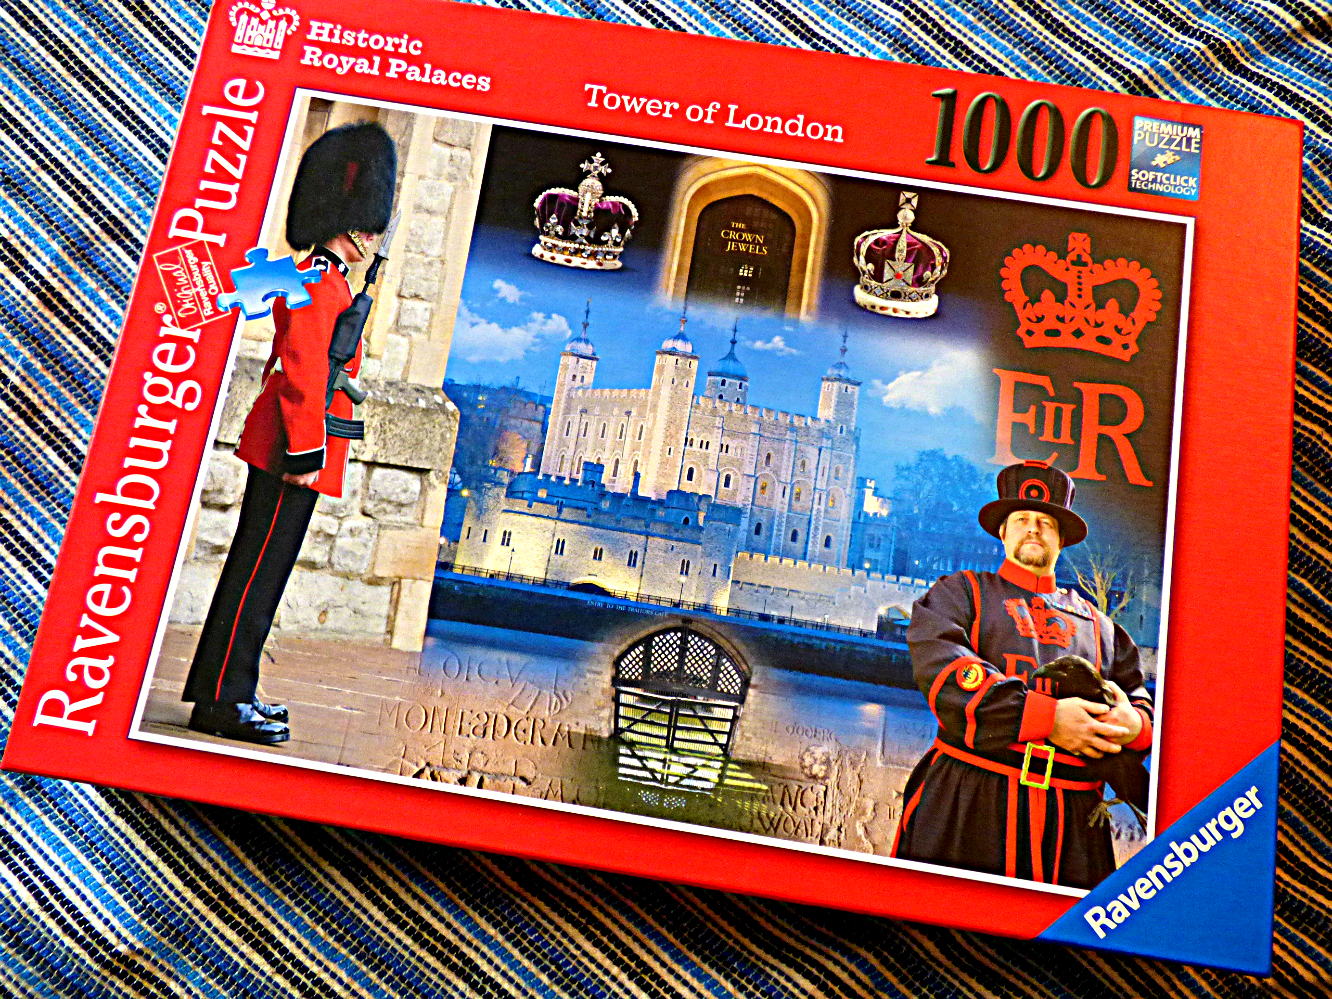 Chez Maximka: The Tower of London 1000 piece jigsaw puzzle from